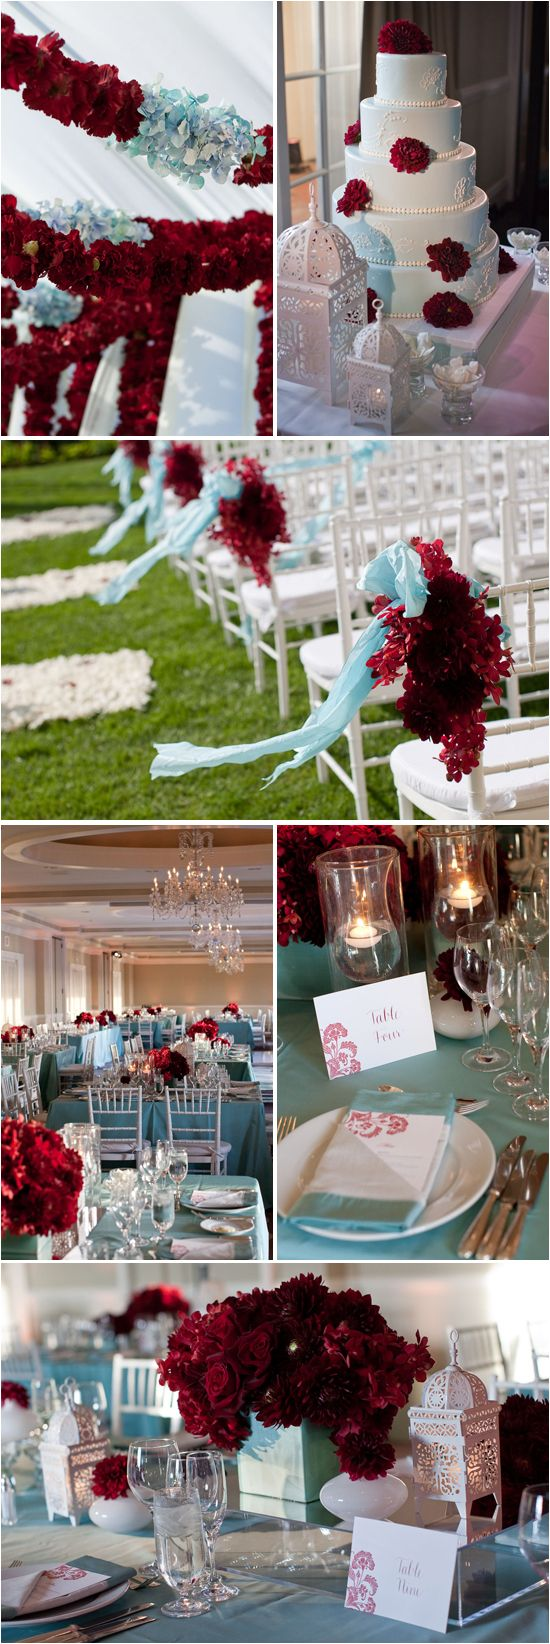 The team behind Details Details event and wedding planning sent over a recent soiree they put together. They loved the vibrant deep red and light blue color palette -- and we do too! The right color combination creates a dramatic and unforgettable impression on the day -- this particular pairing is romantic, grandiose and elegant. Enjoy the red/blue inspiration!